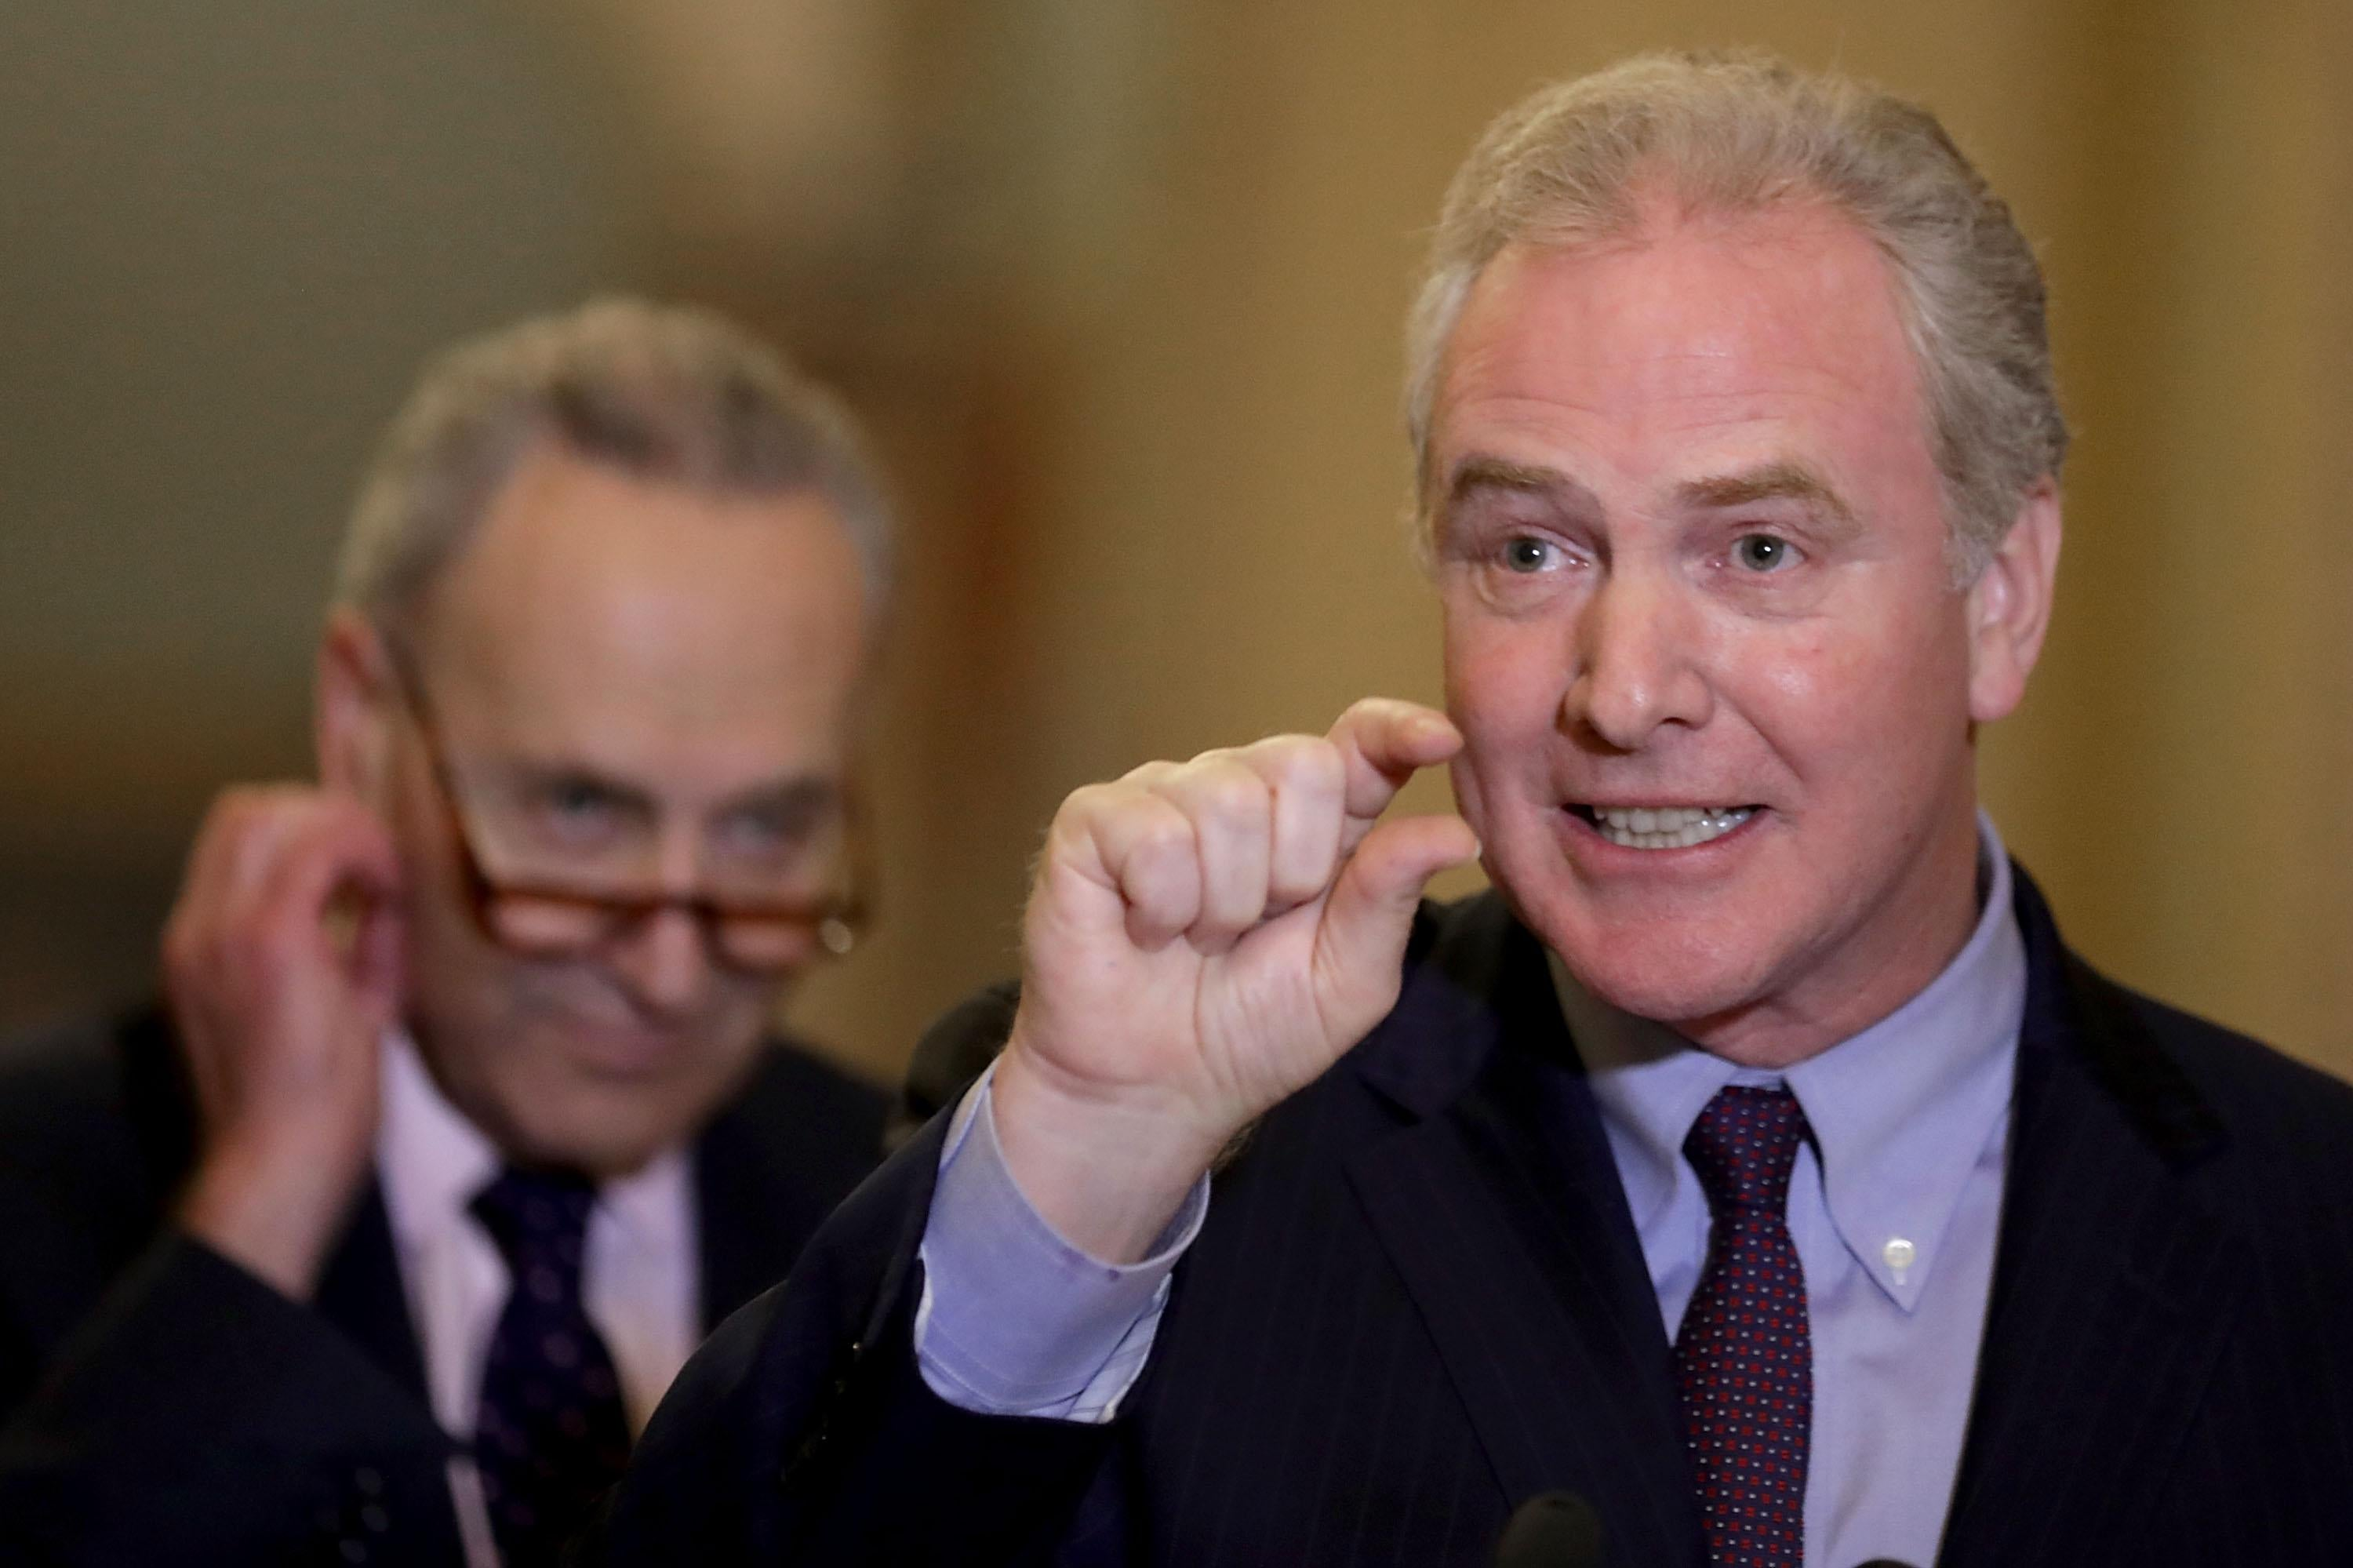 Sen. Chris Van Hollen talks to reporters with Senate Minority Leader Charles Schumer on November 7, 2017 in Washington, DC.